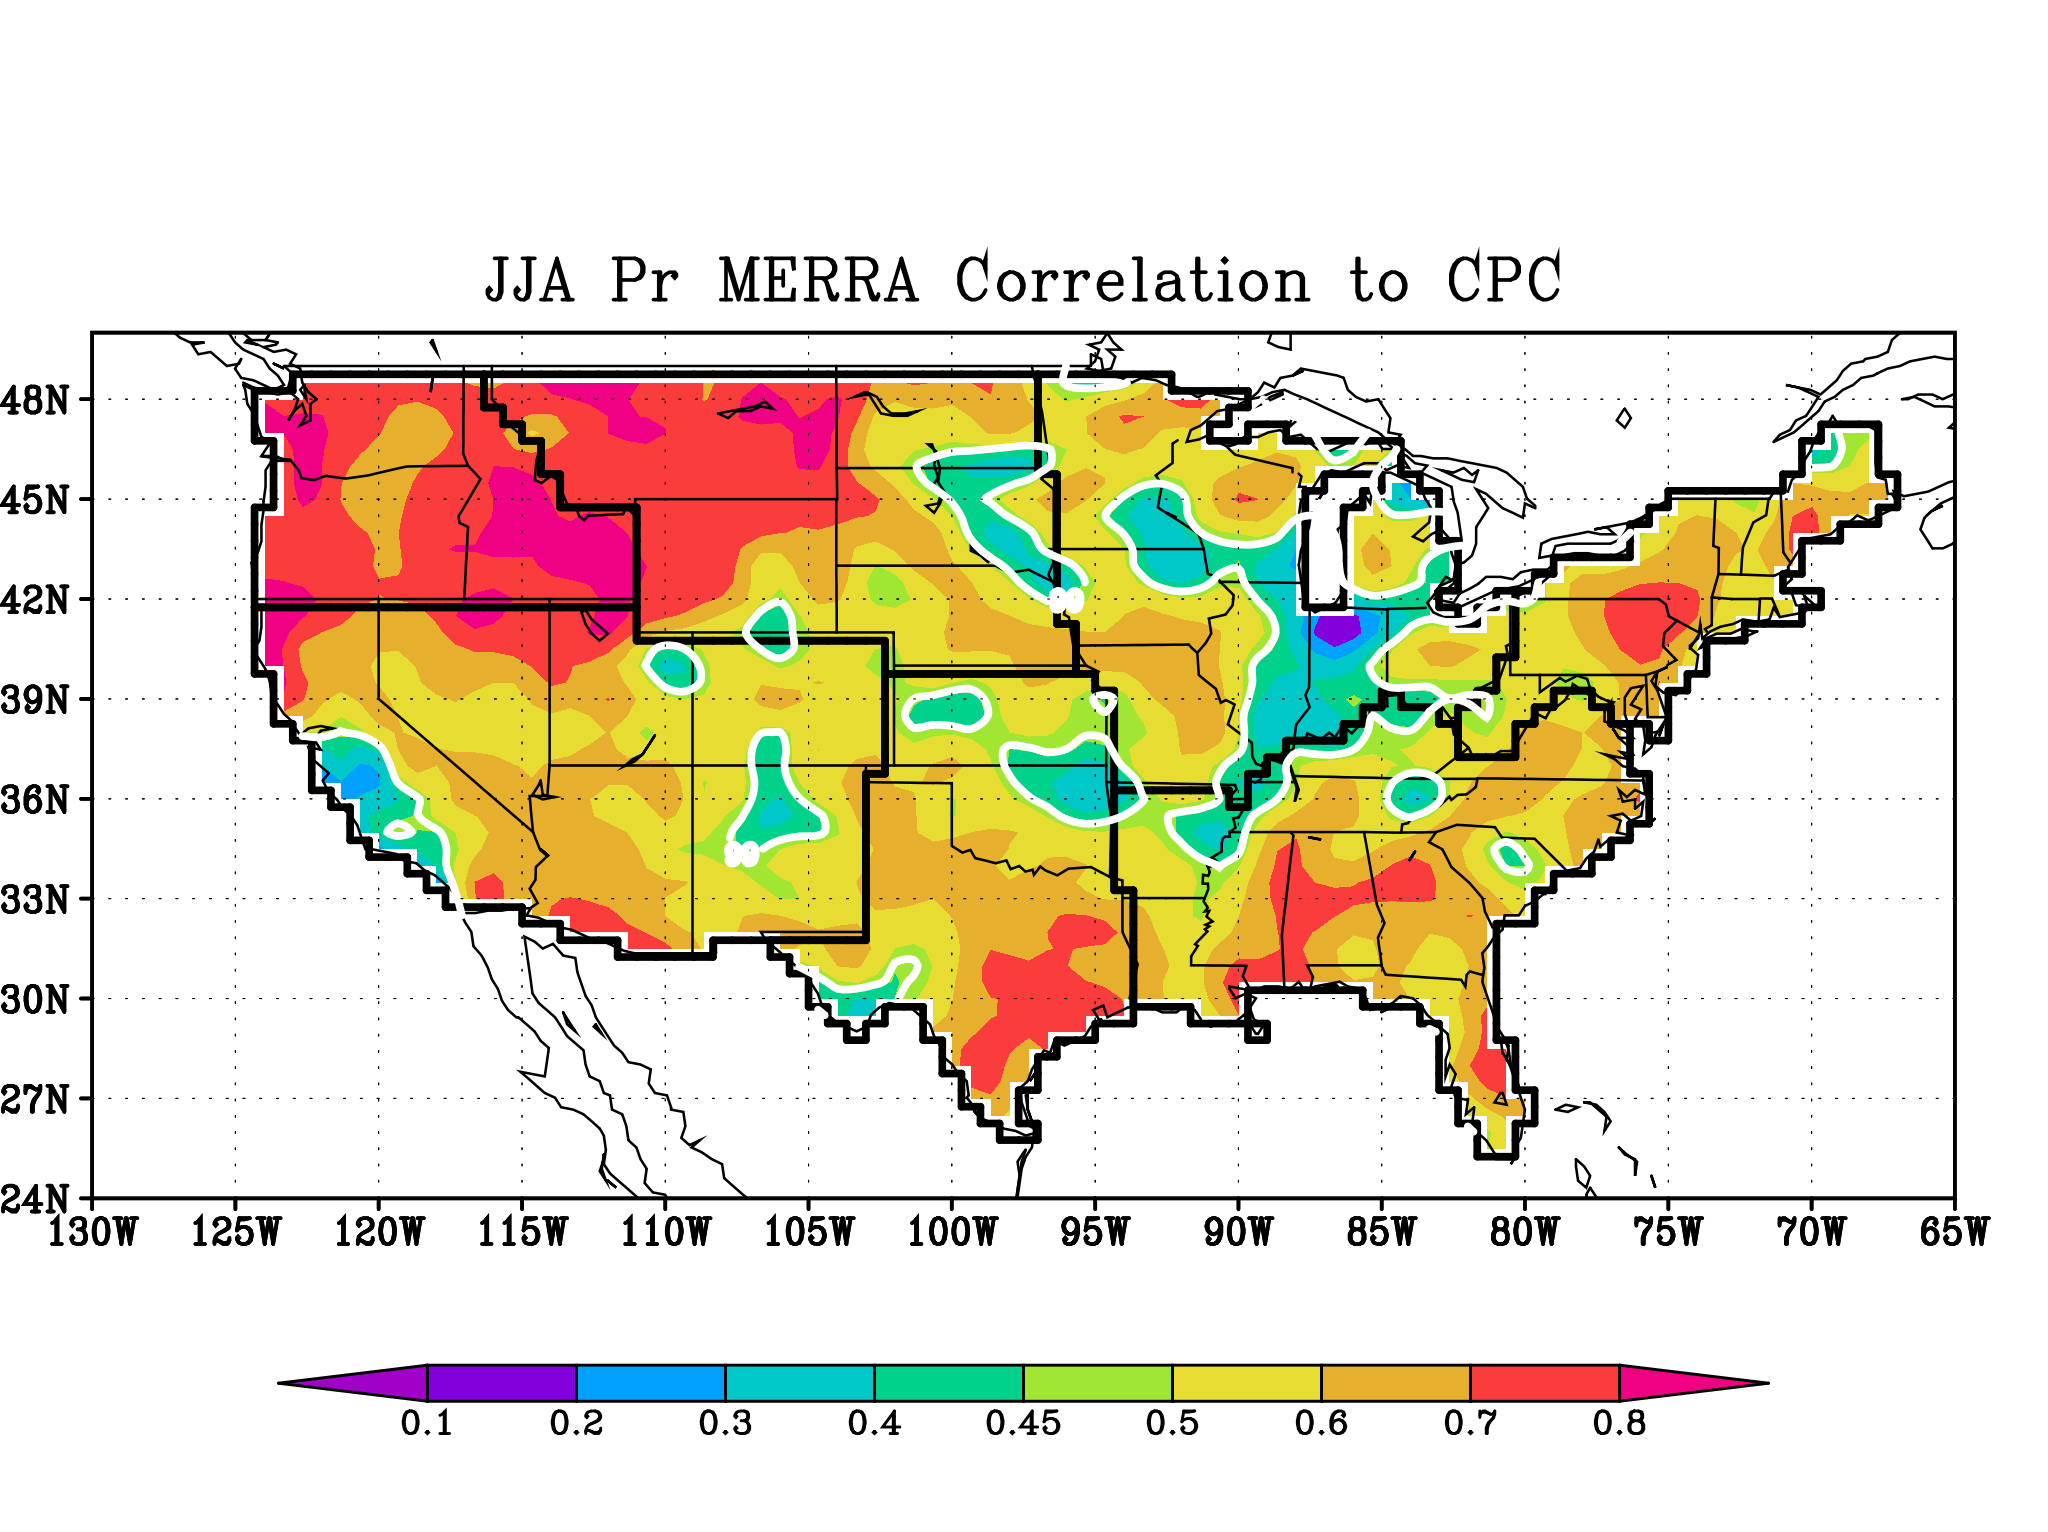 MERRA JJA Seasonal Precip correlated to CPC Gauge Observations